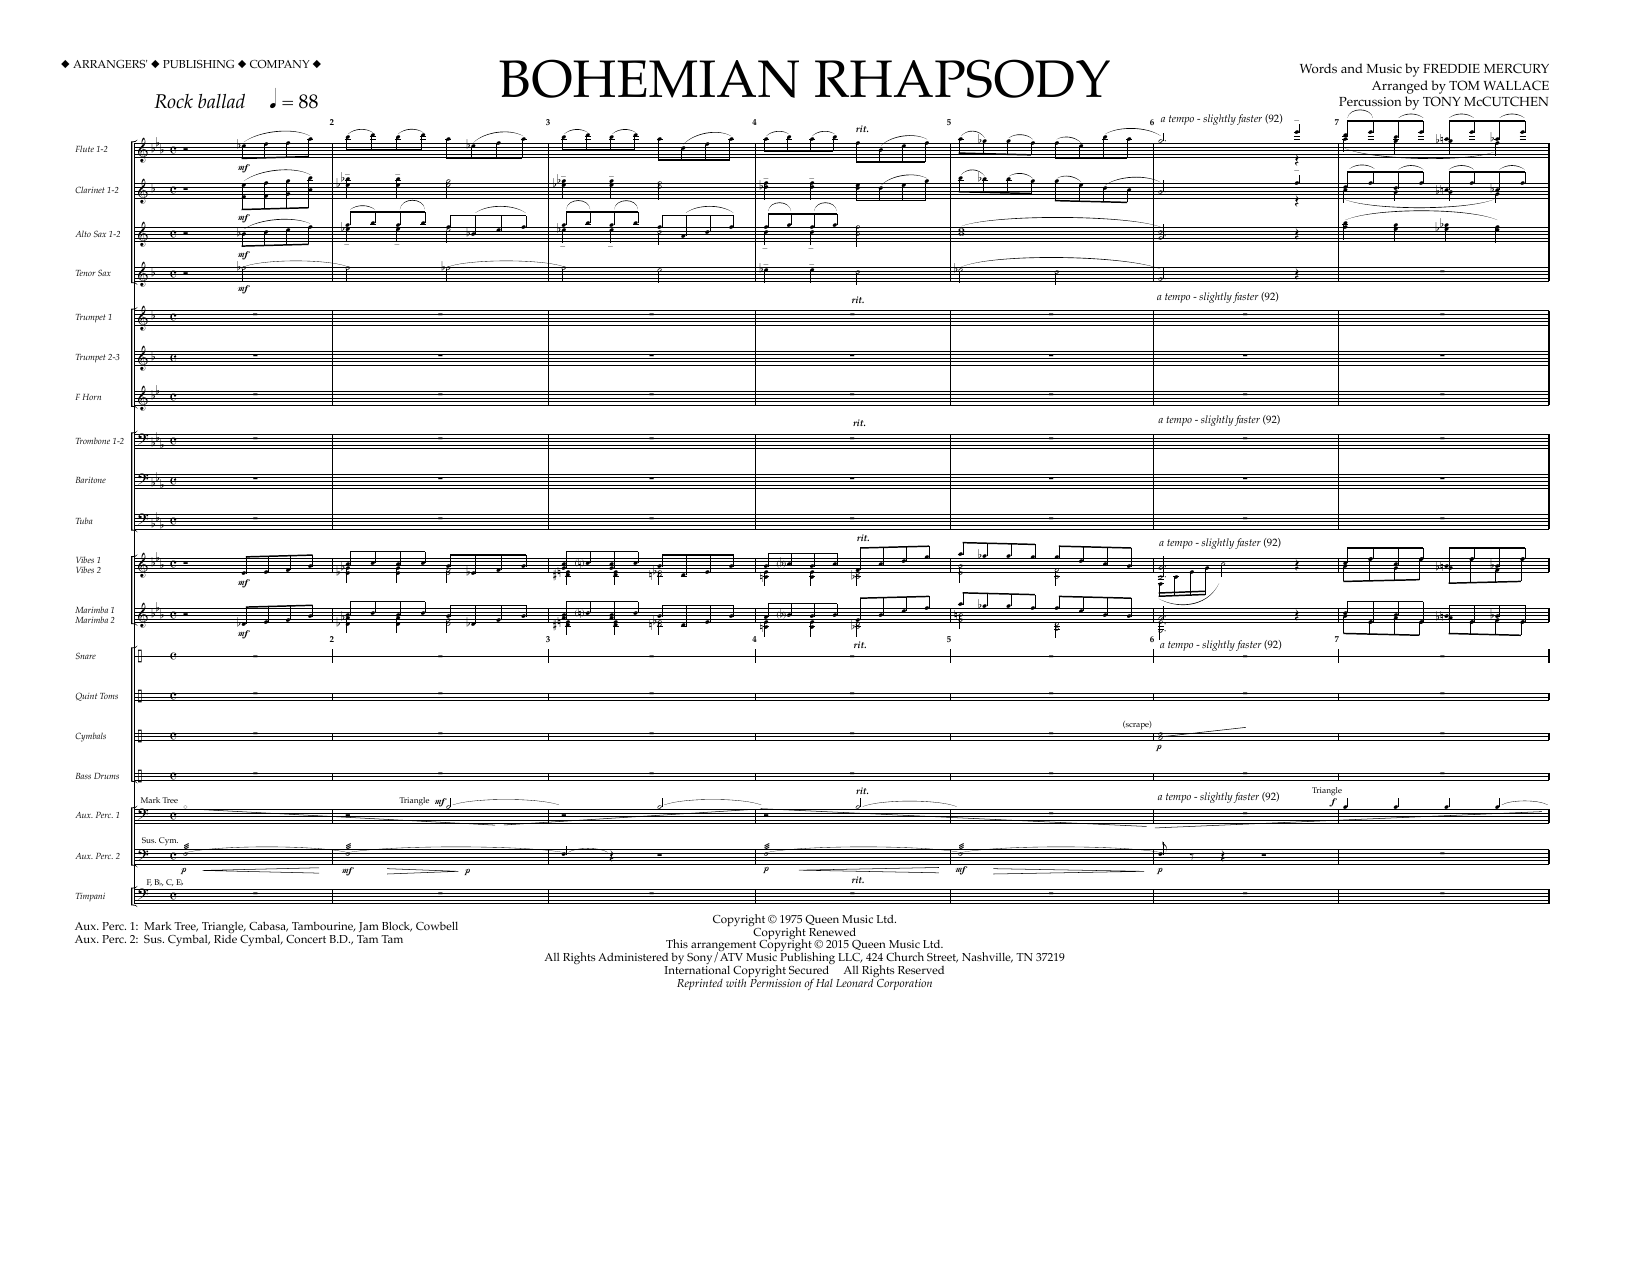 Bohemian Rhapsody (COMPLETE) sheet music for marching band by Tom Wallace